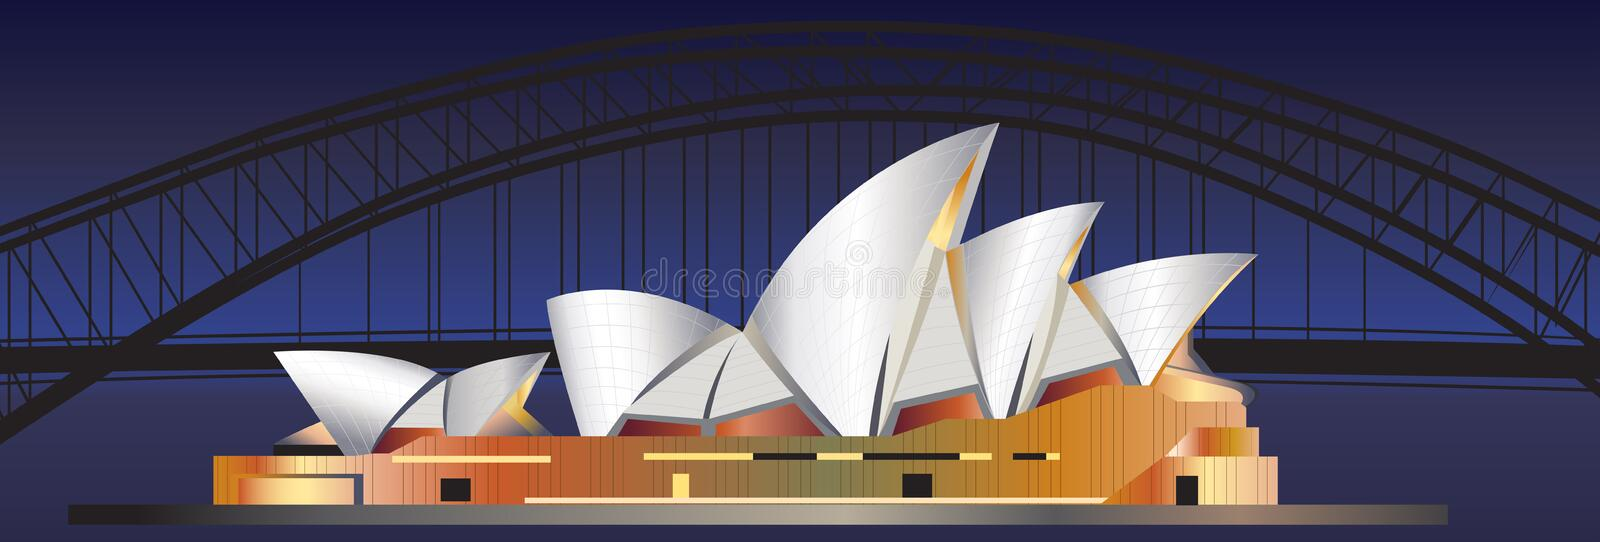 Sydney. Background illustration of Sydney with the opera house and the bridge